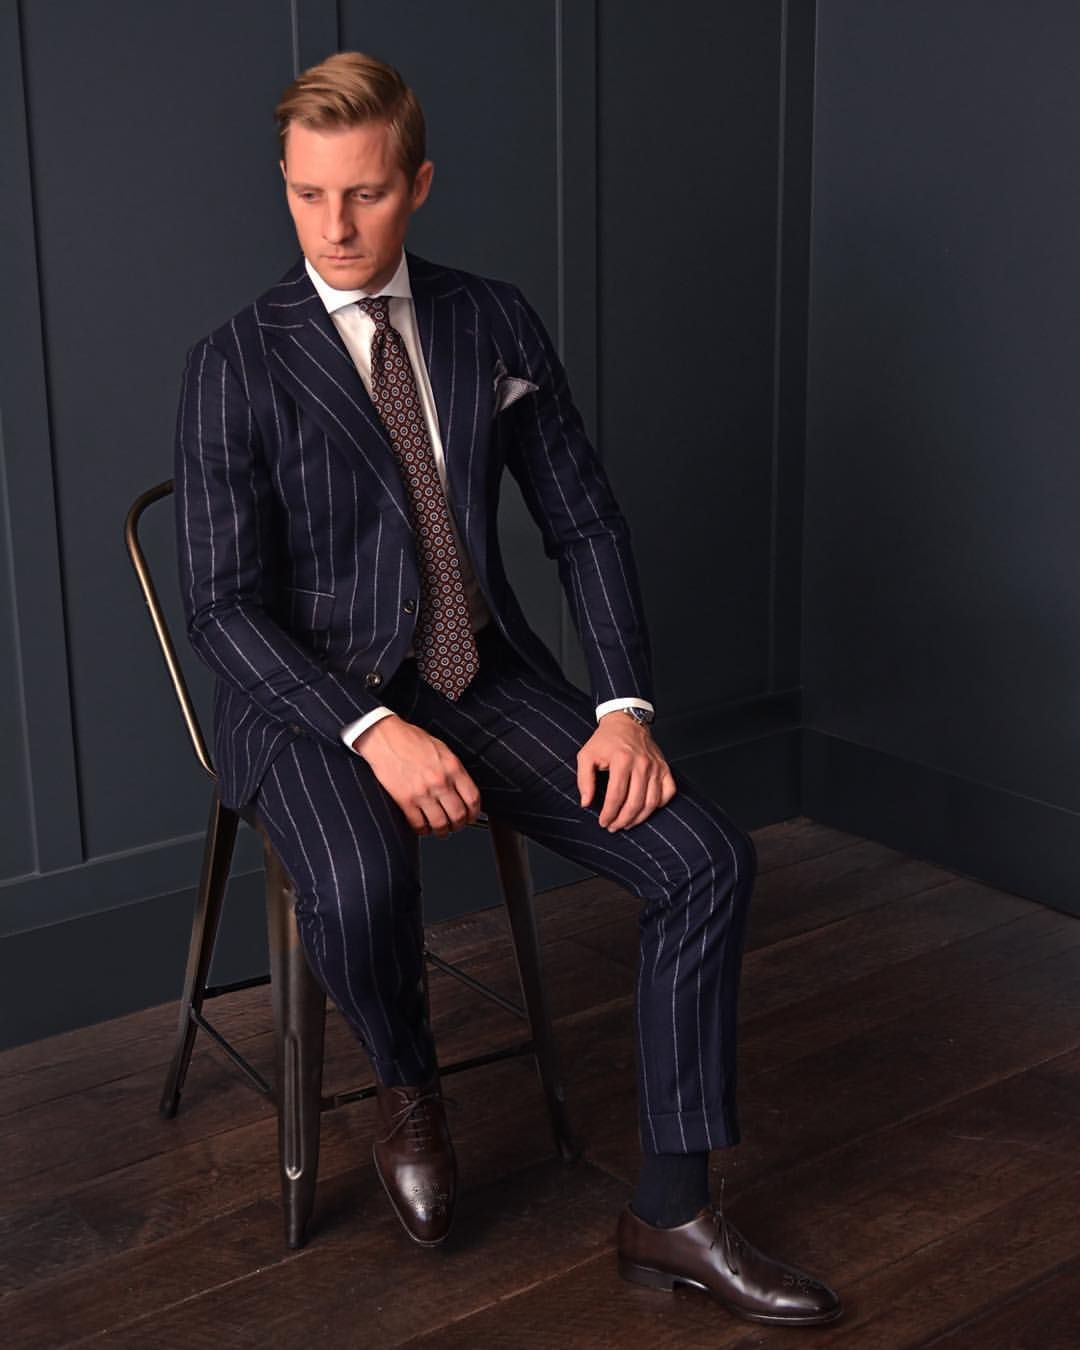 Flannel shirt under suit  beckettrobb uc Our first look in our Holiday Gift Guide VBC flannel